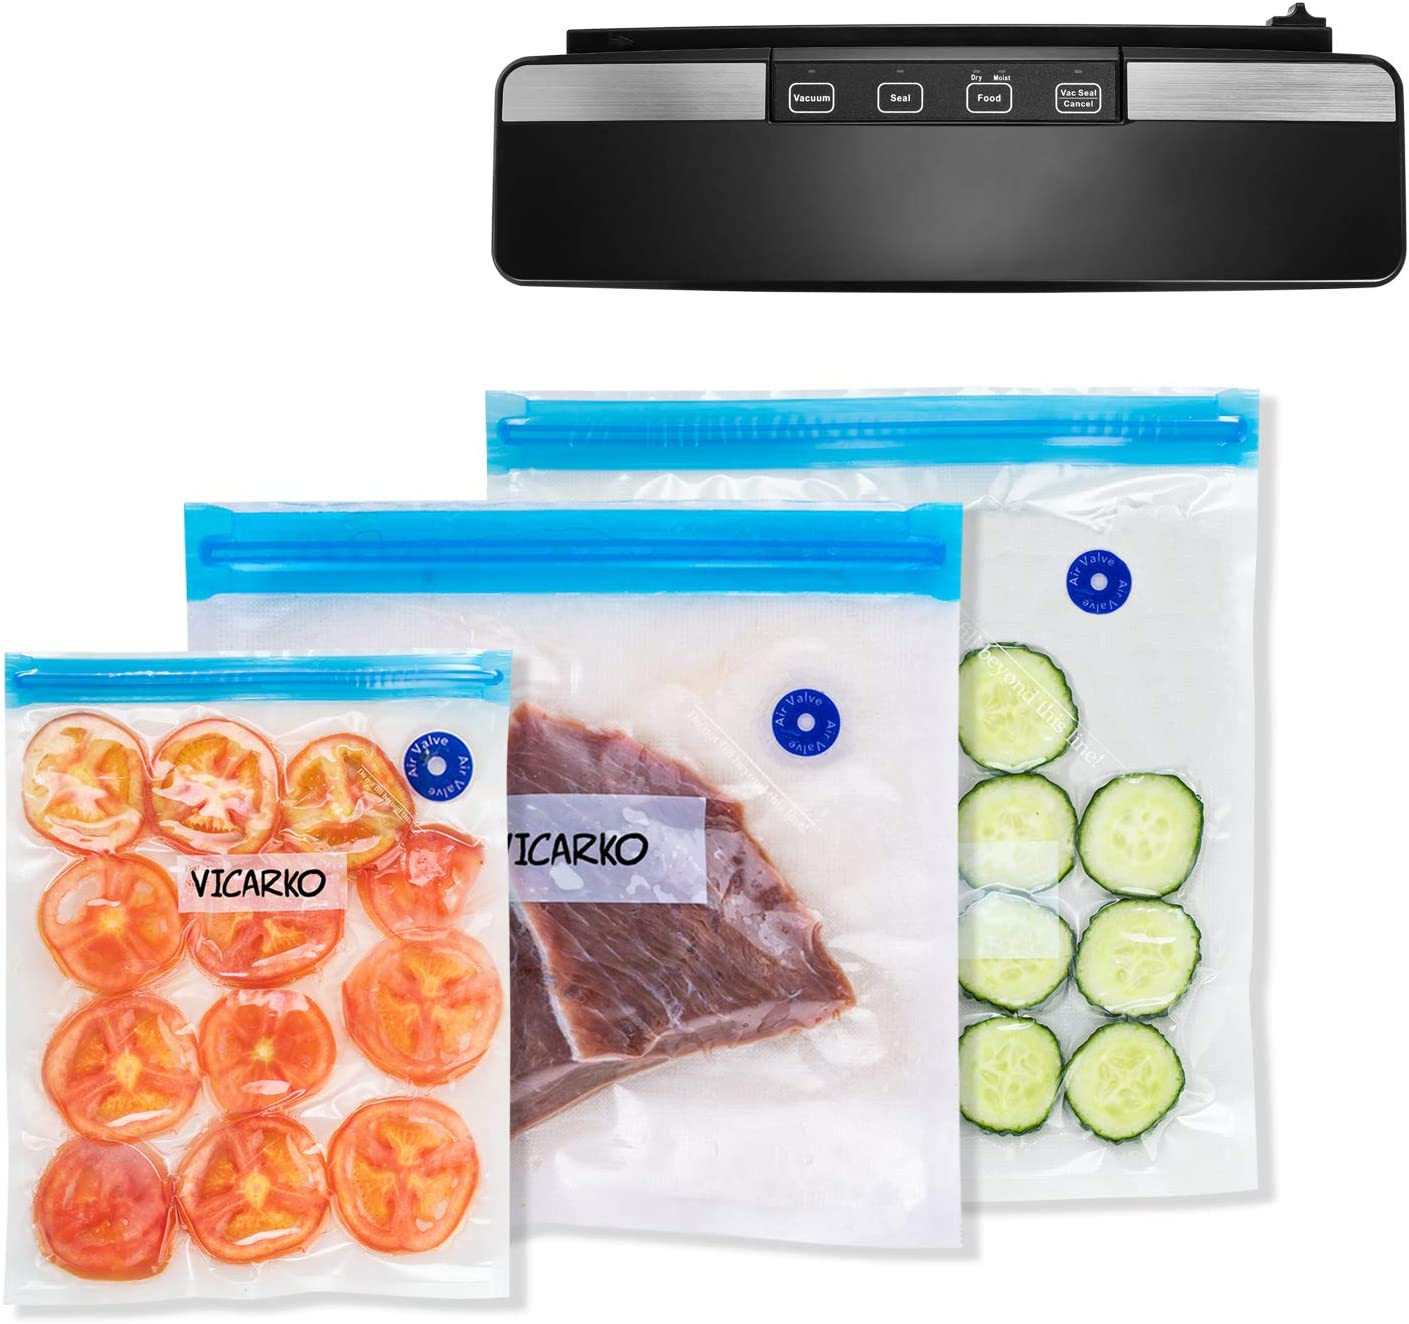 VICARKO Vacuum Sealer Machine, Automatic Food Sealer with Cutter | for Food Saver Sous Vide | Dry & Moist Food Modes | Compact Design | Starter Kit | Vacuum Sealing Bags and Roll Included